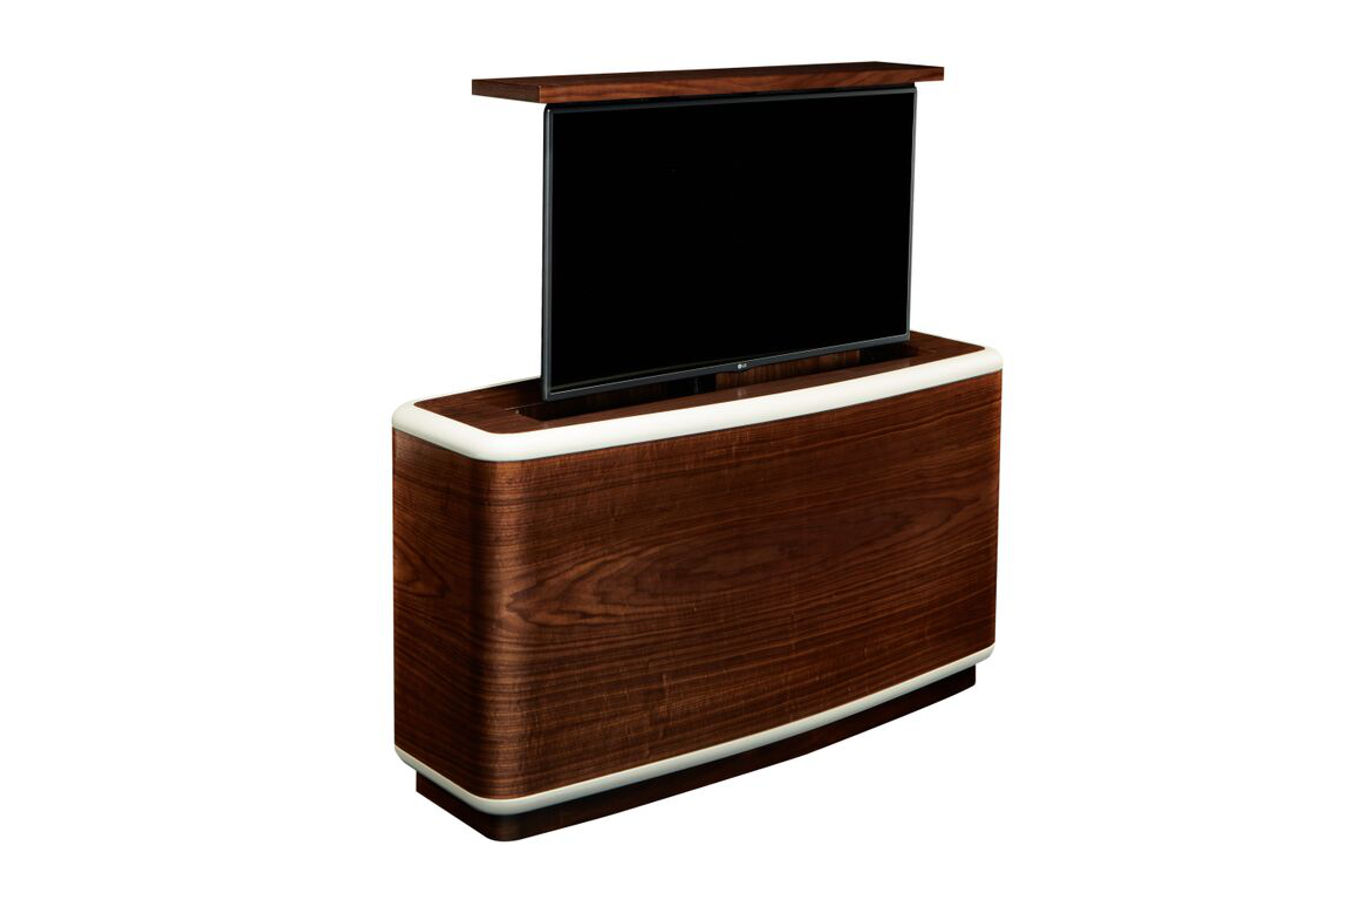 Fercarra rounded hidden TV in walnut furniture with lift by Cabinet Tronix and Trace Mccullough